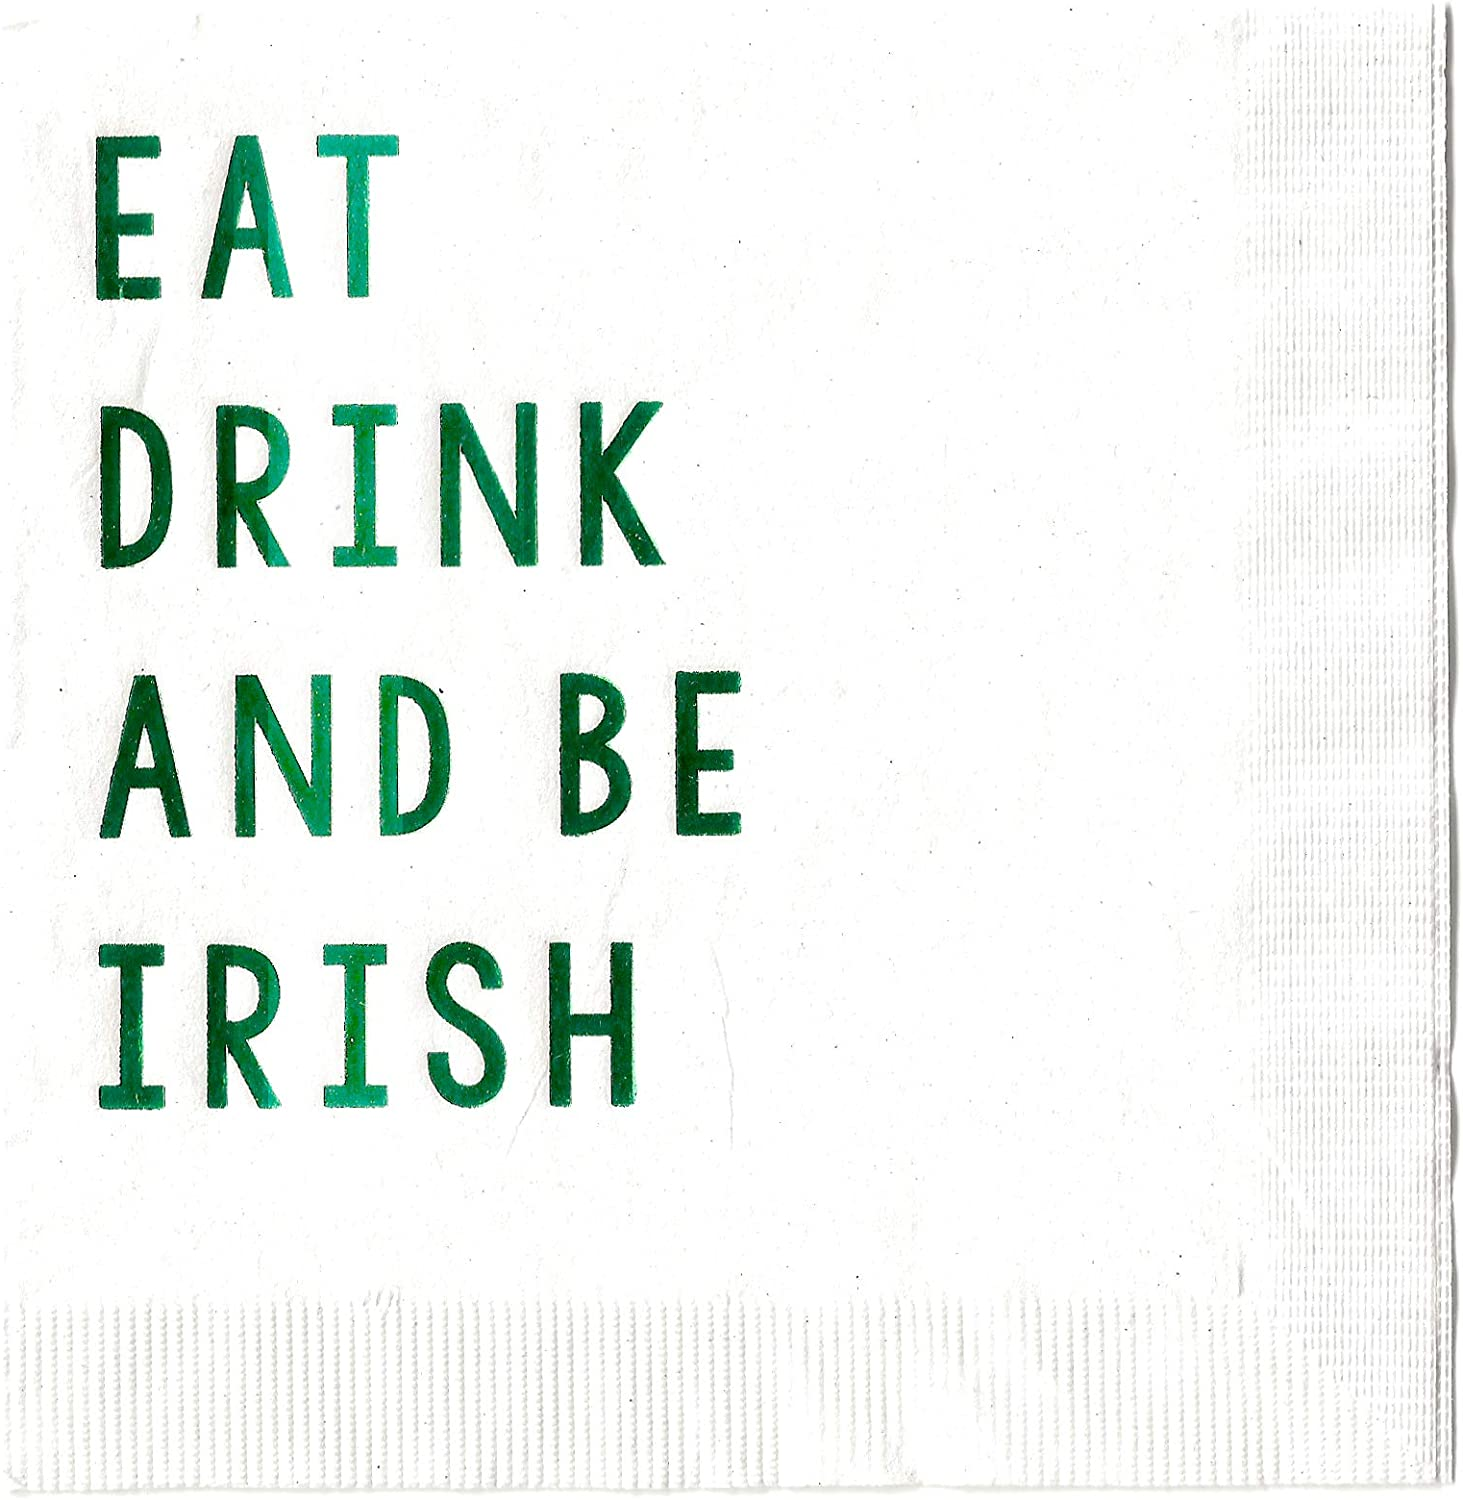 Eat Drink And Be Irish Cocktail Beverage Napkins (20 pcs) Foil Stamped St. Patrick's Day Party Decorations by Nerdy Words (White with Metallic Green Foil)